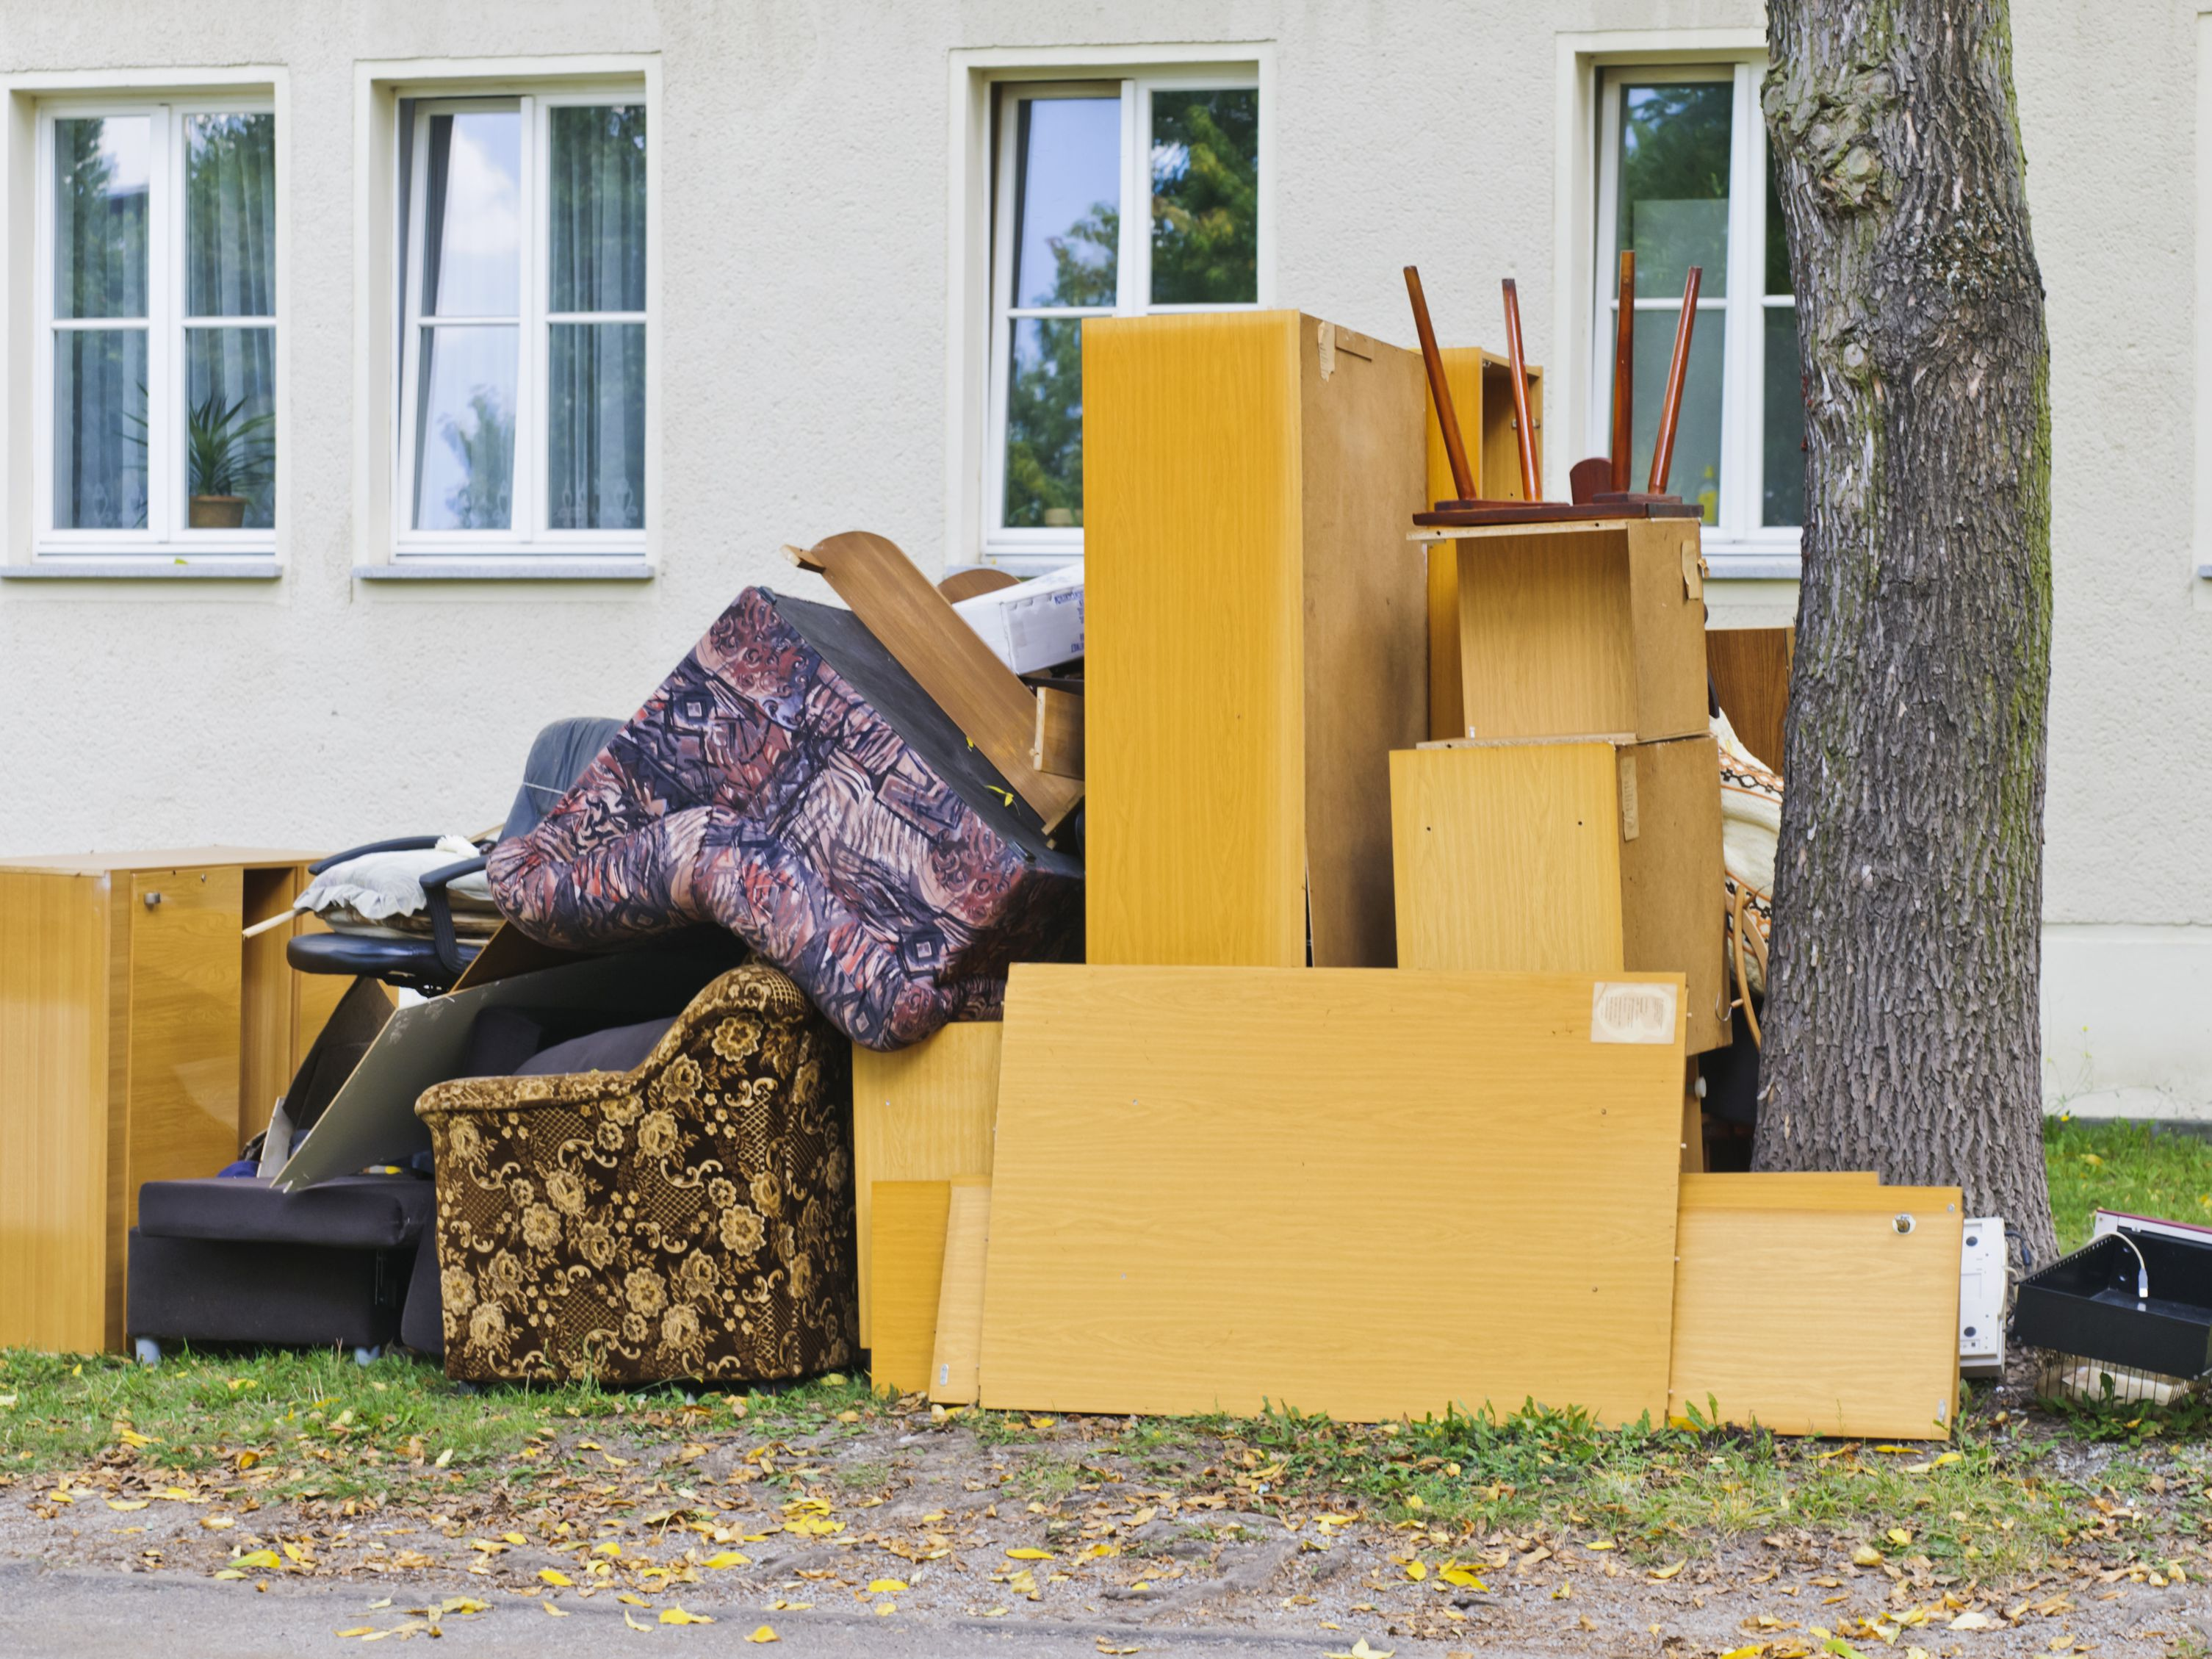 Best Junk Removal Services of 2021